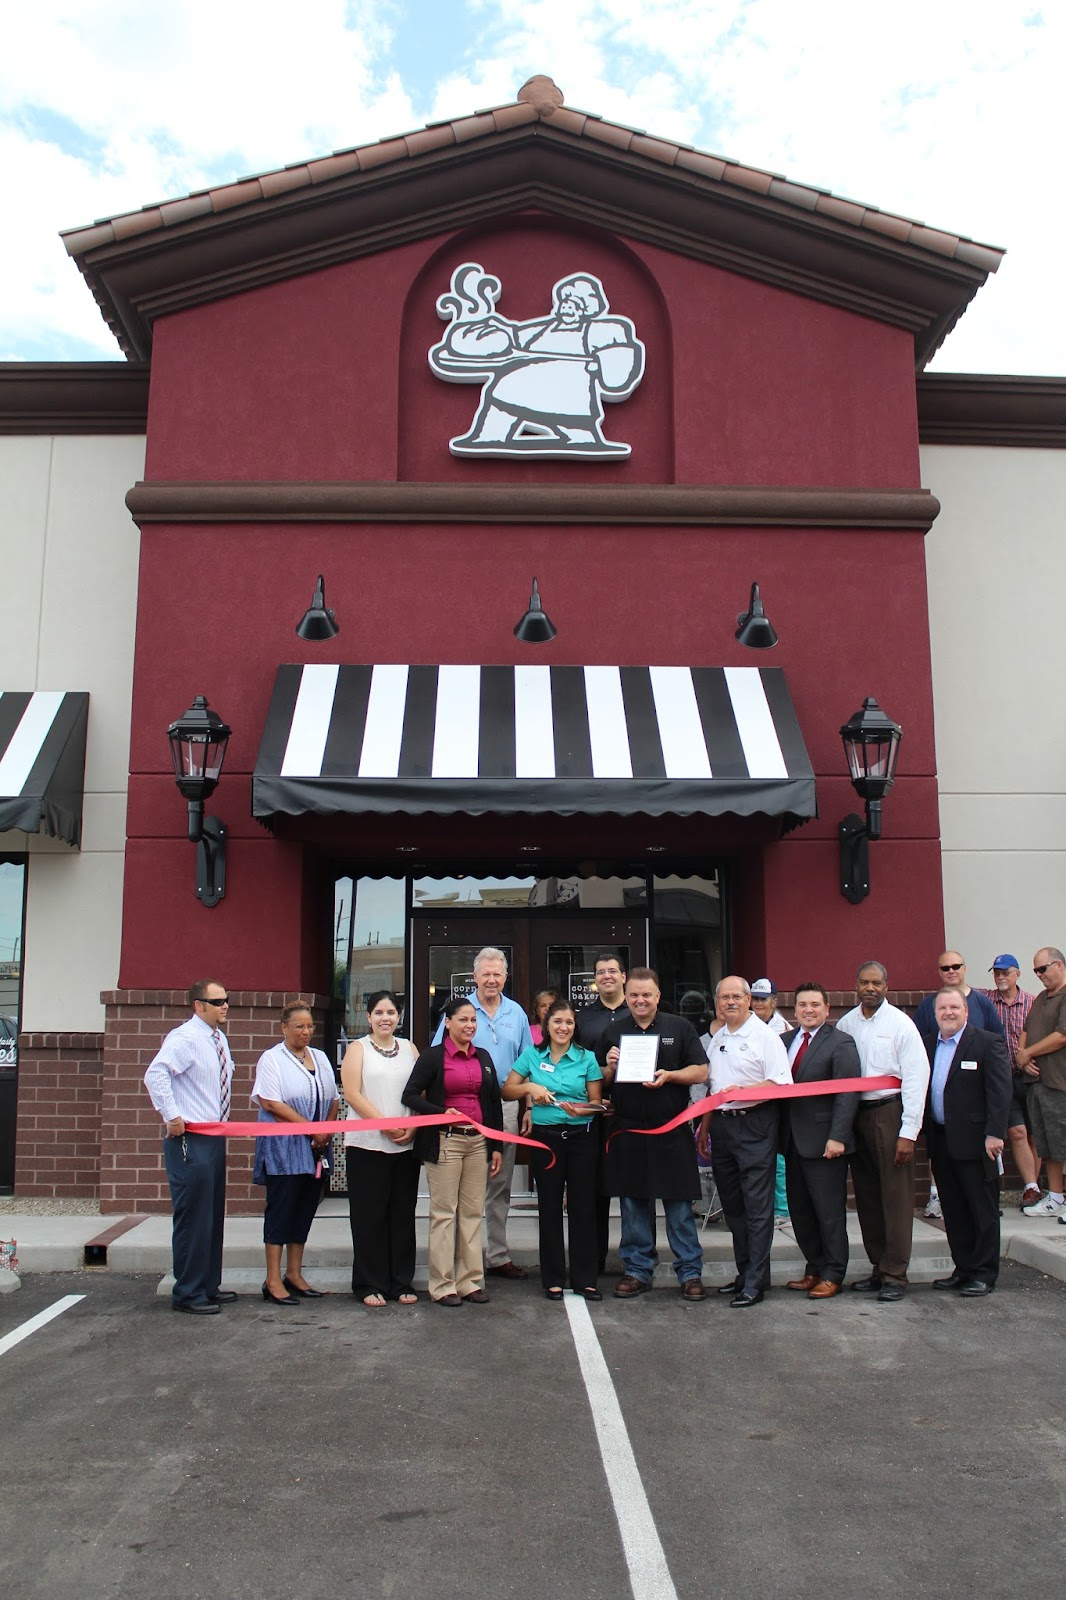 Congratulations to Corner Bakery Cafe located at 203 S. Wilmot Road, on their Grand Opening!